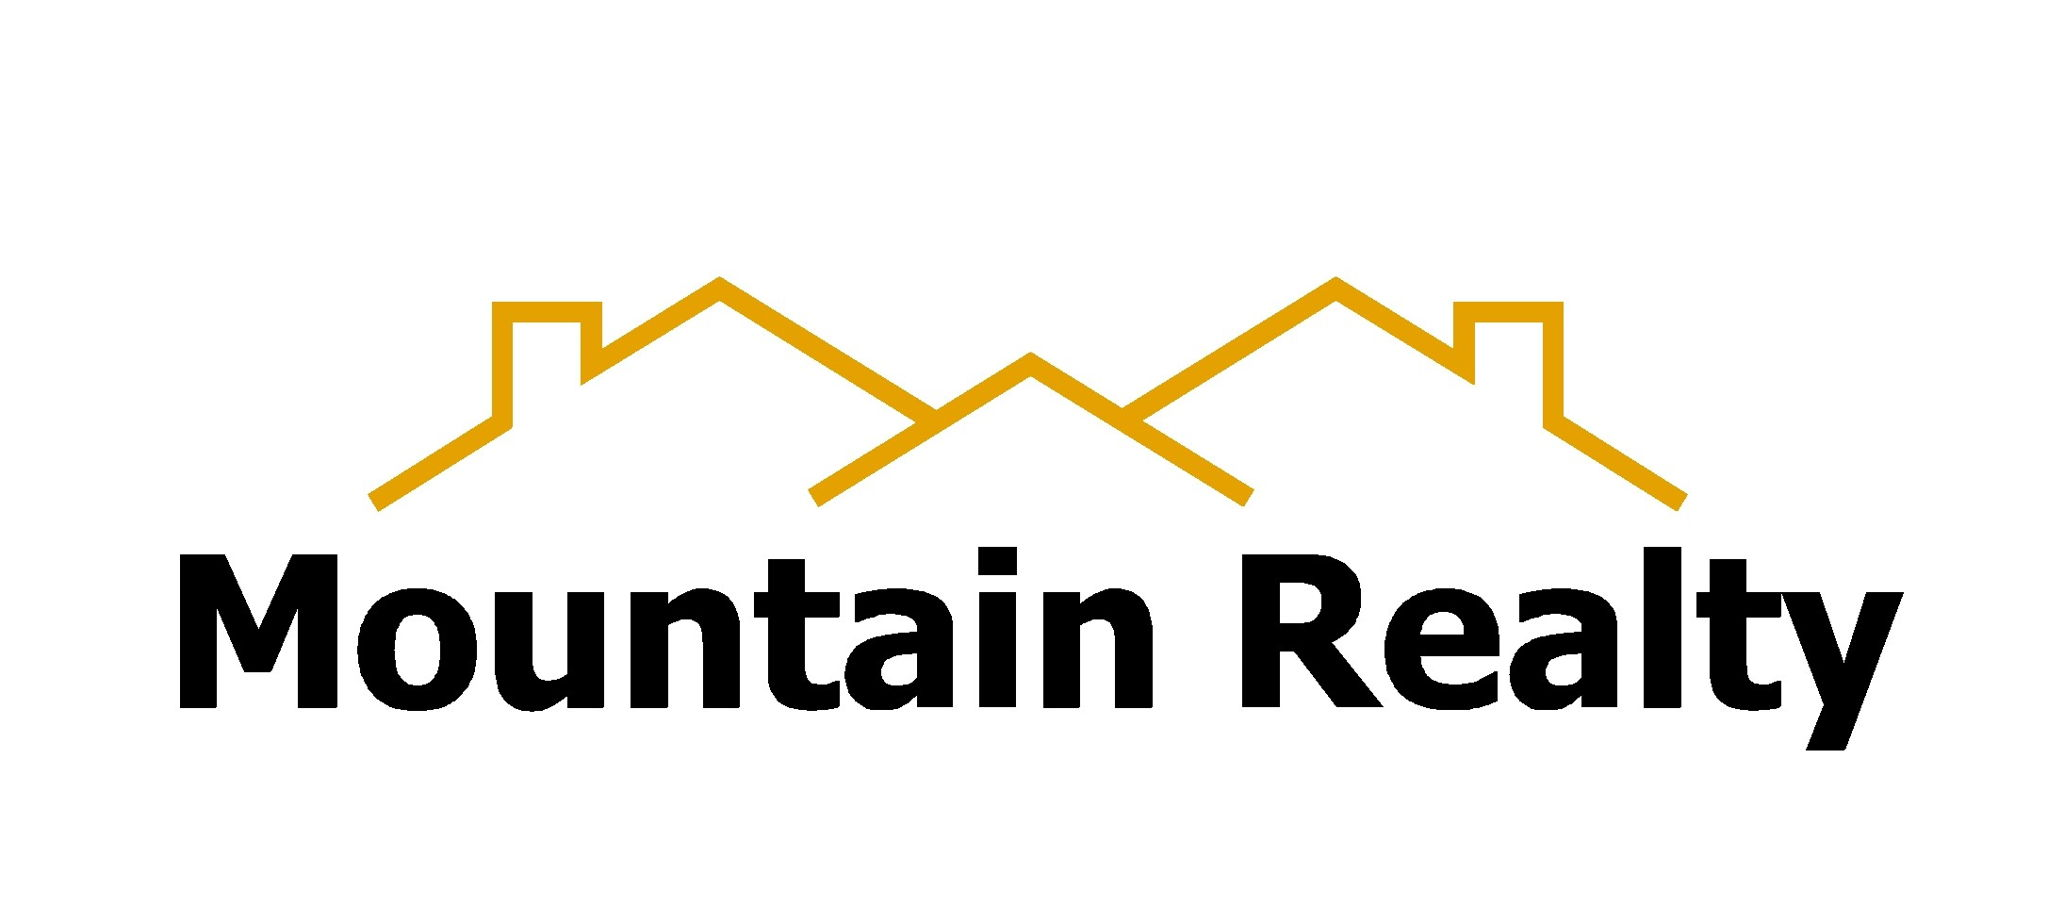 Mountain Realty LLC